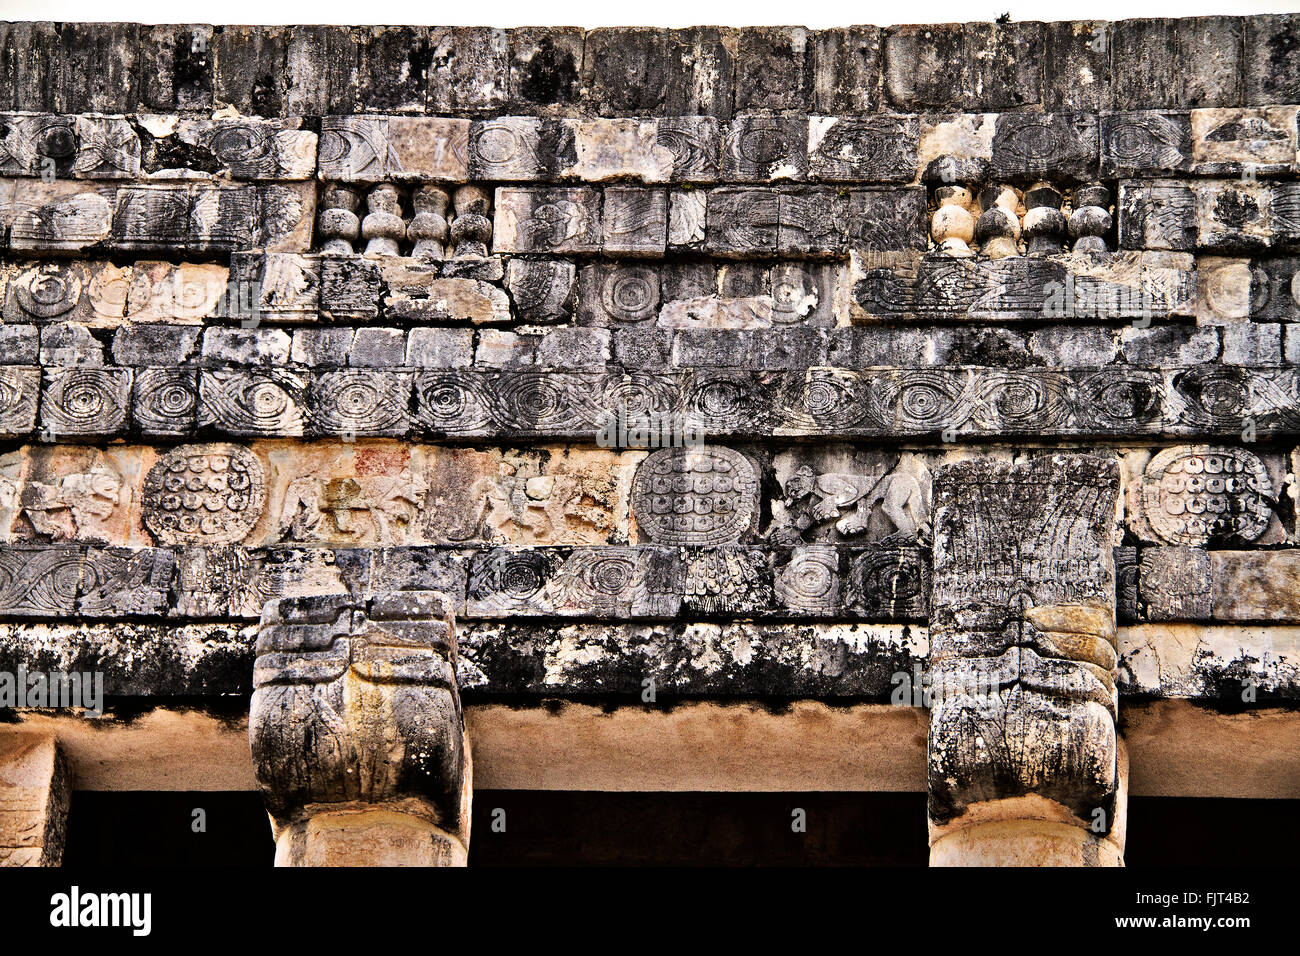 Top Of Temple Of Jaguars Chichen Itza Mexico - Stock Image